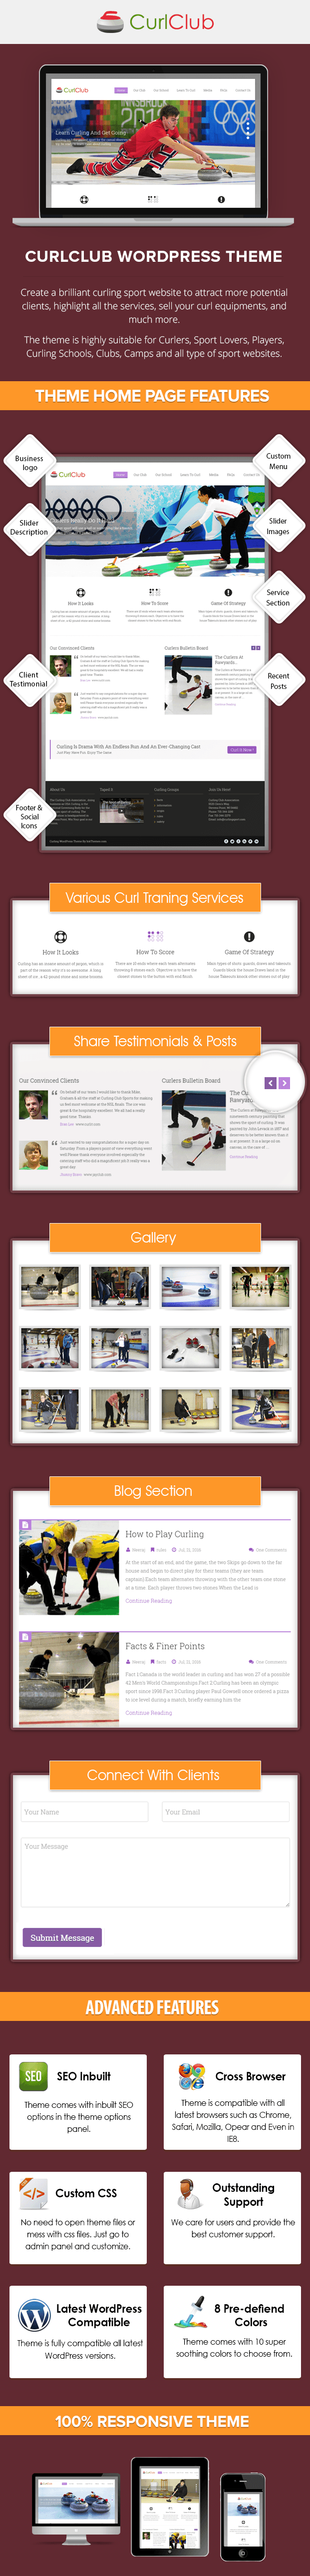 Curling WordPress Theme Sales Page Preview